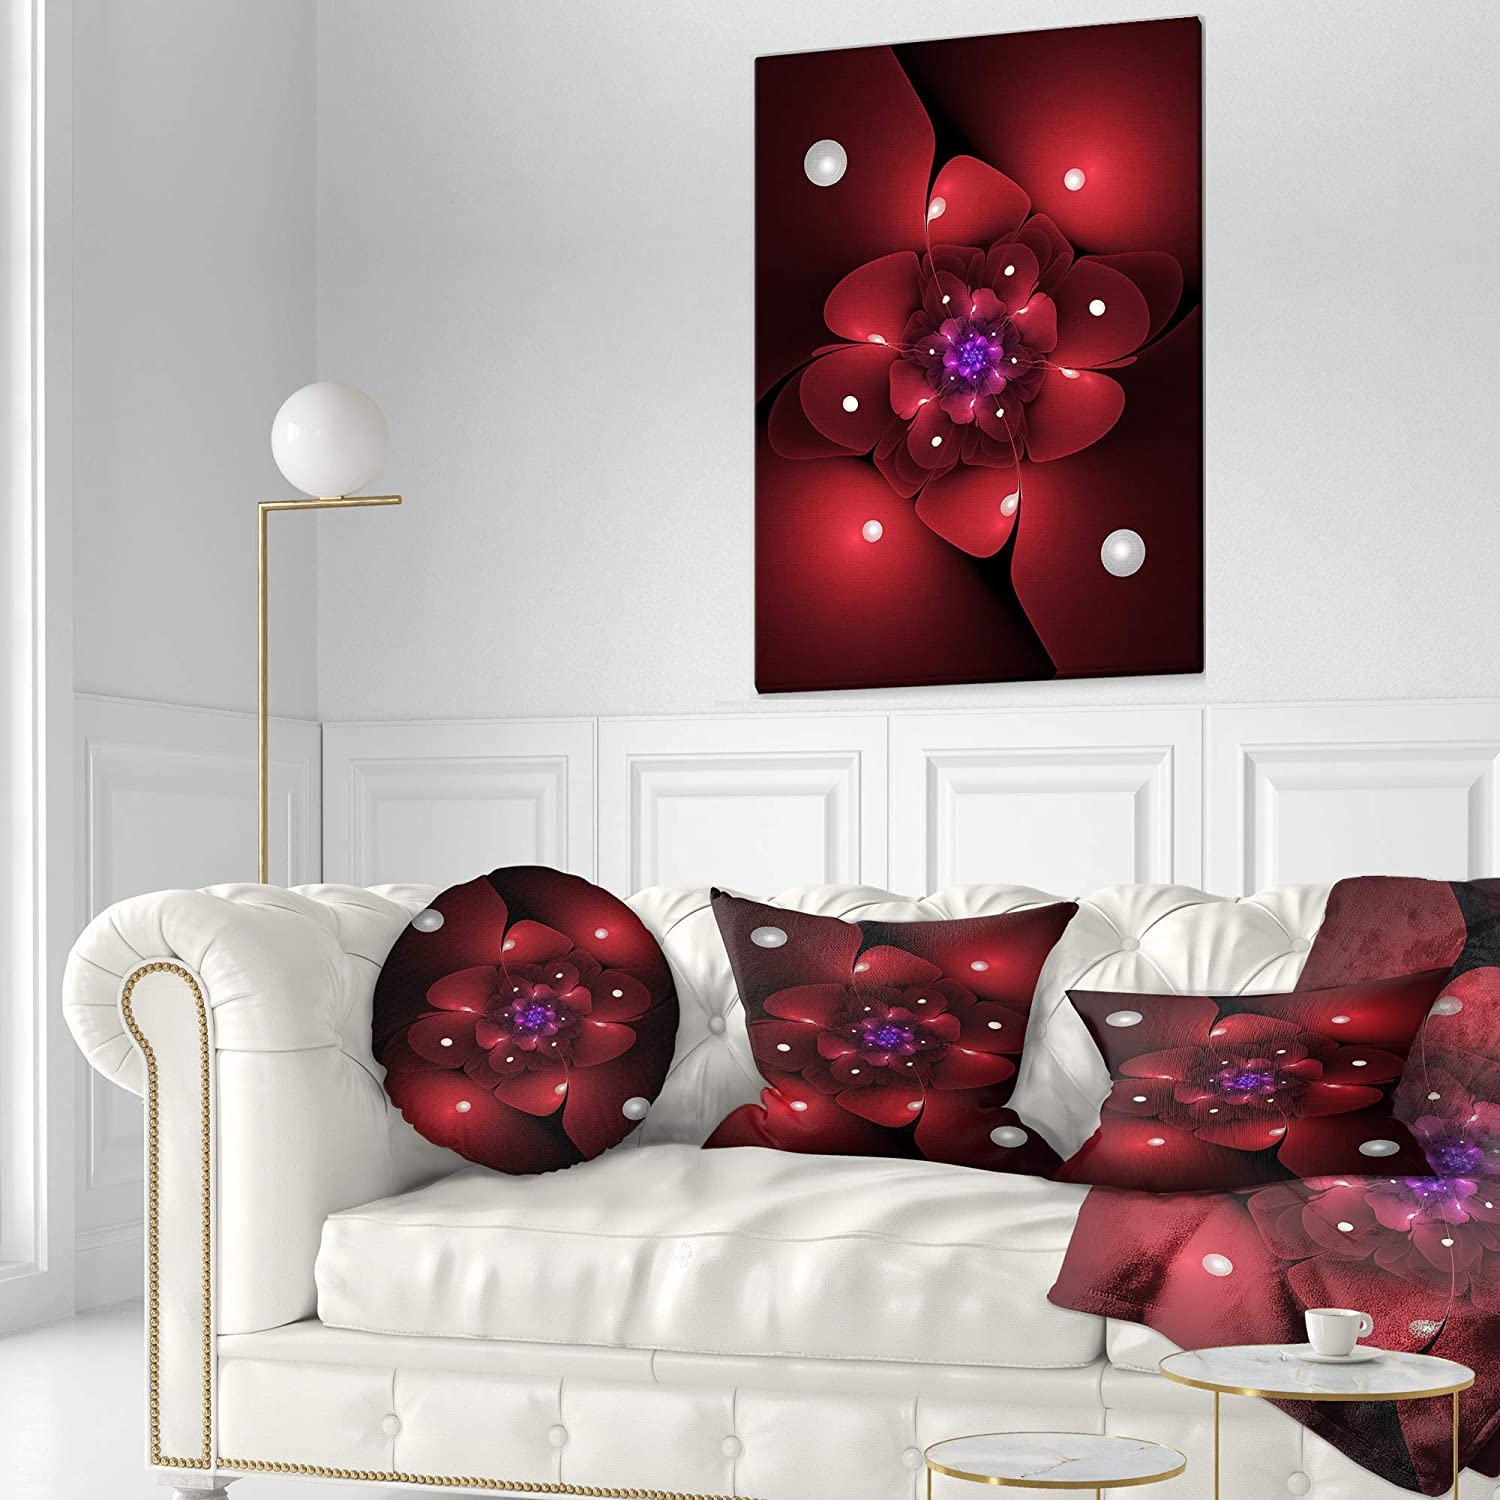 Sofa Throw Pillow 12 in in x 20 in Designart CU11929-12-20 Red Fractal Flower with Illumination Floral Lumbar Cushion Cover for Living Room